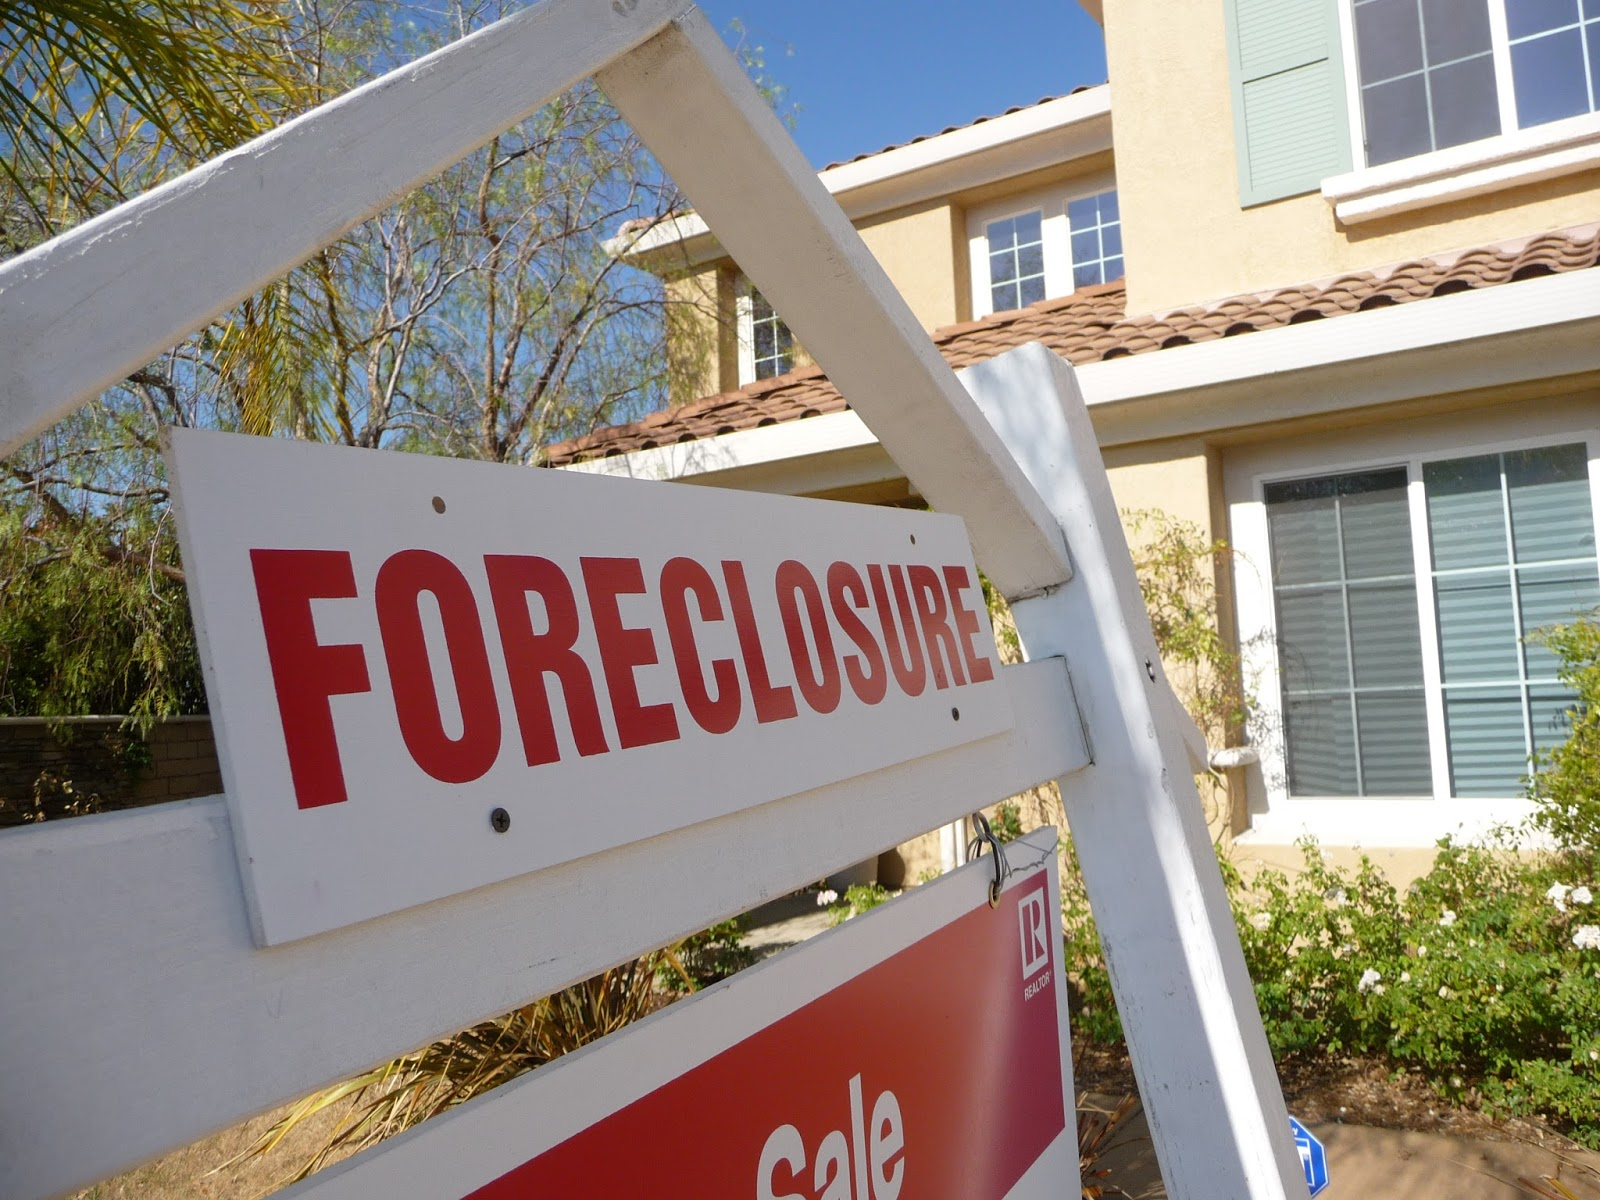 foreclosure sign in front of house image